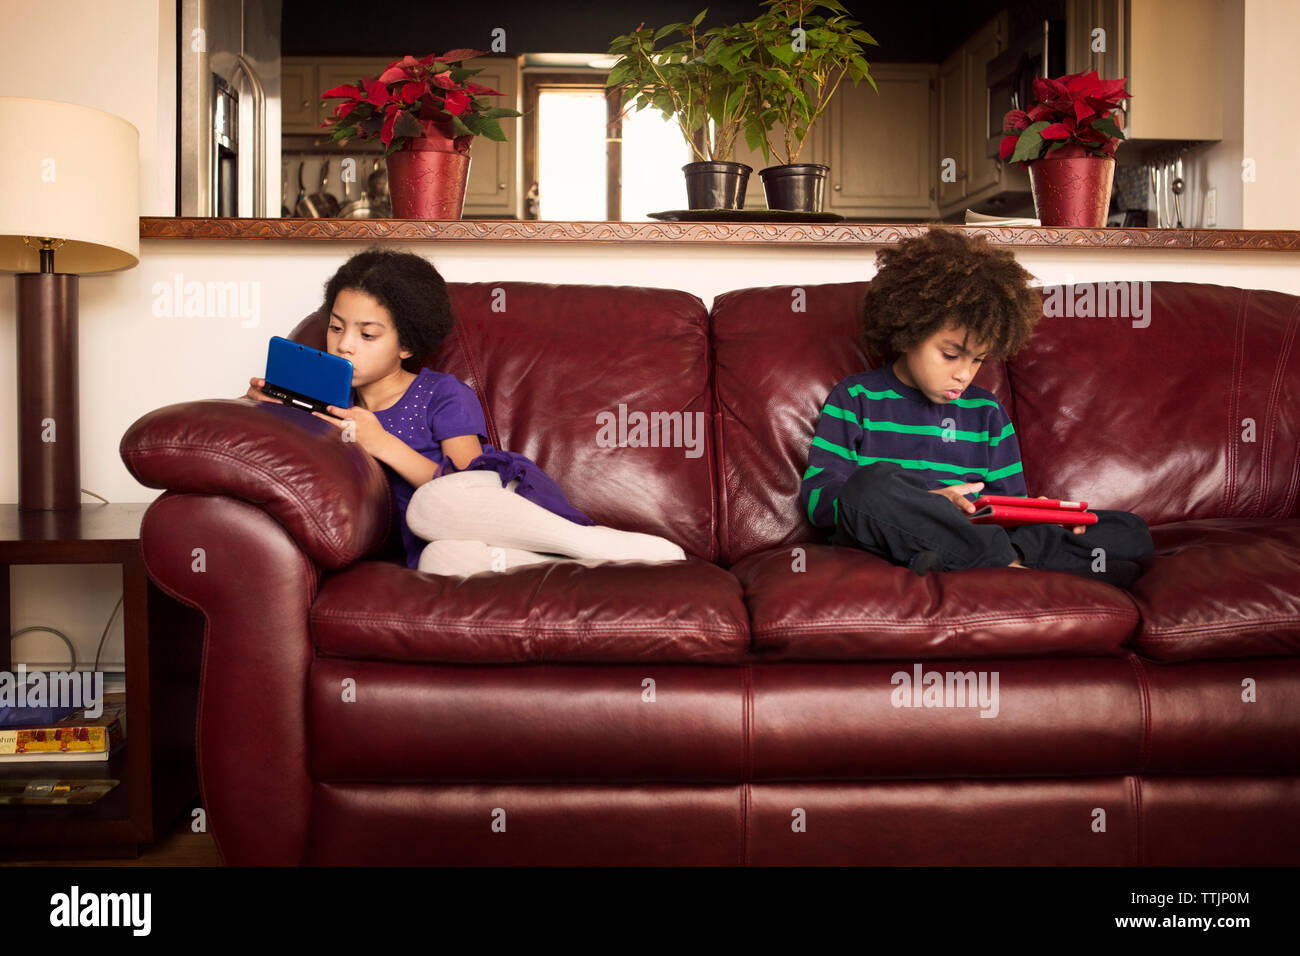 Brother and sister using technologies while sitting on leather sofa at home - Stock Image